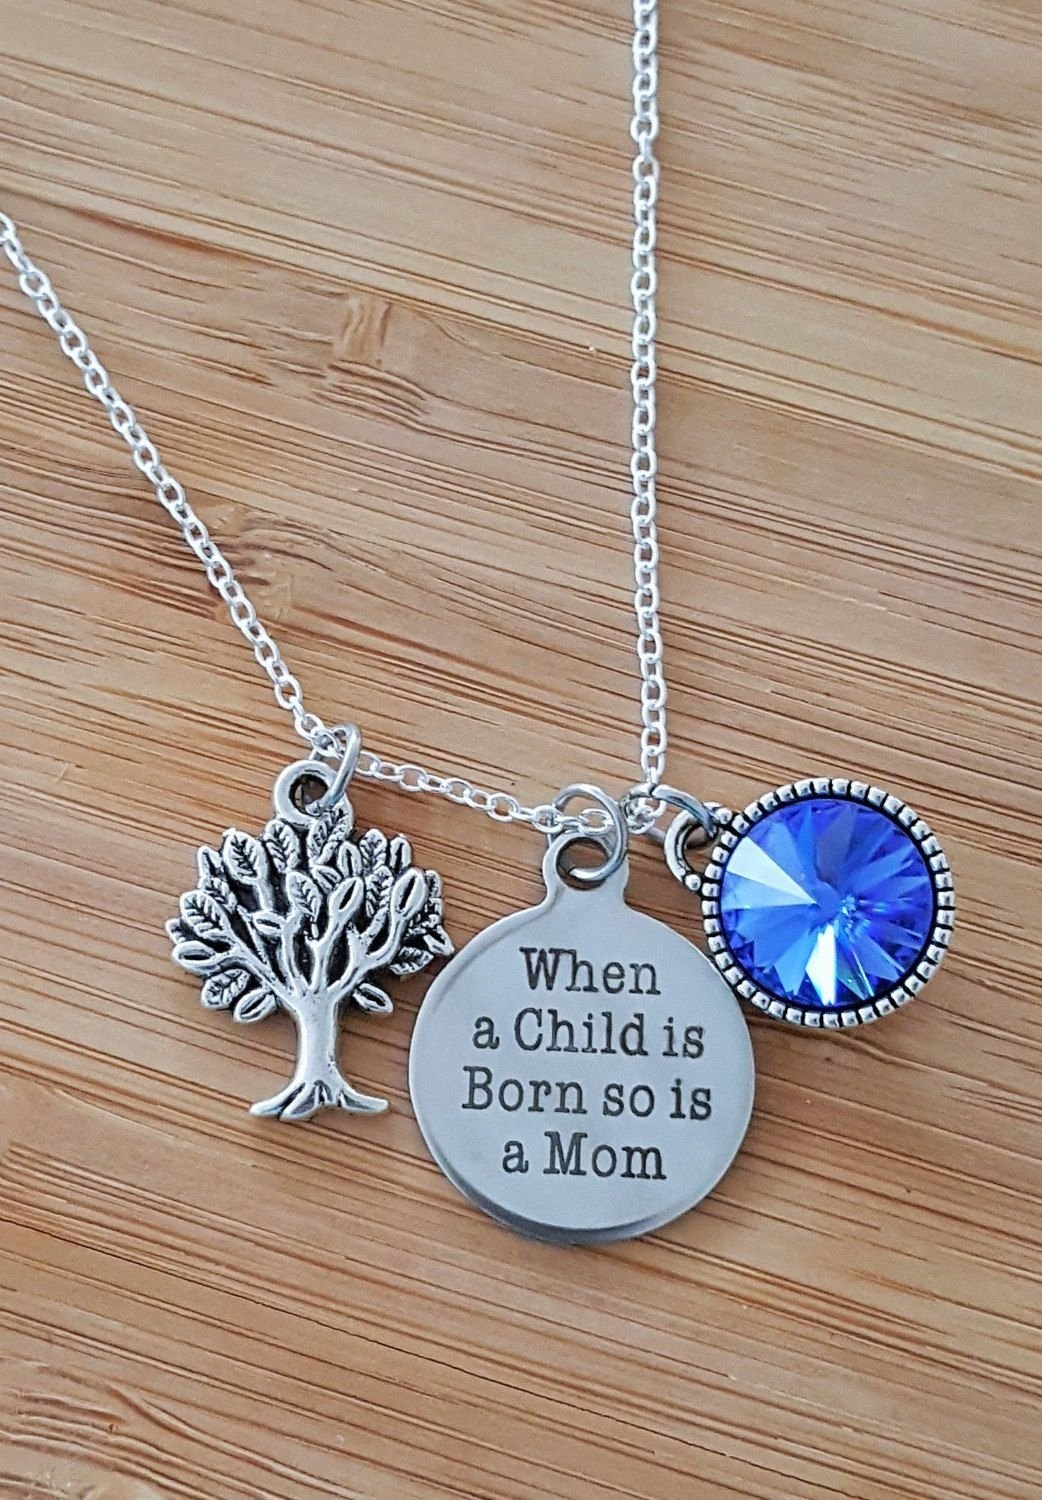 10 Awesome Push Gift Ideas For Wife new mom necklace new mom gift new mom push present new mommy gifts 1 2020